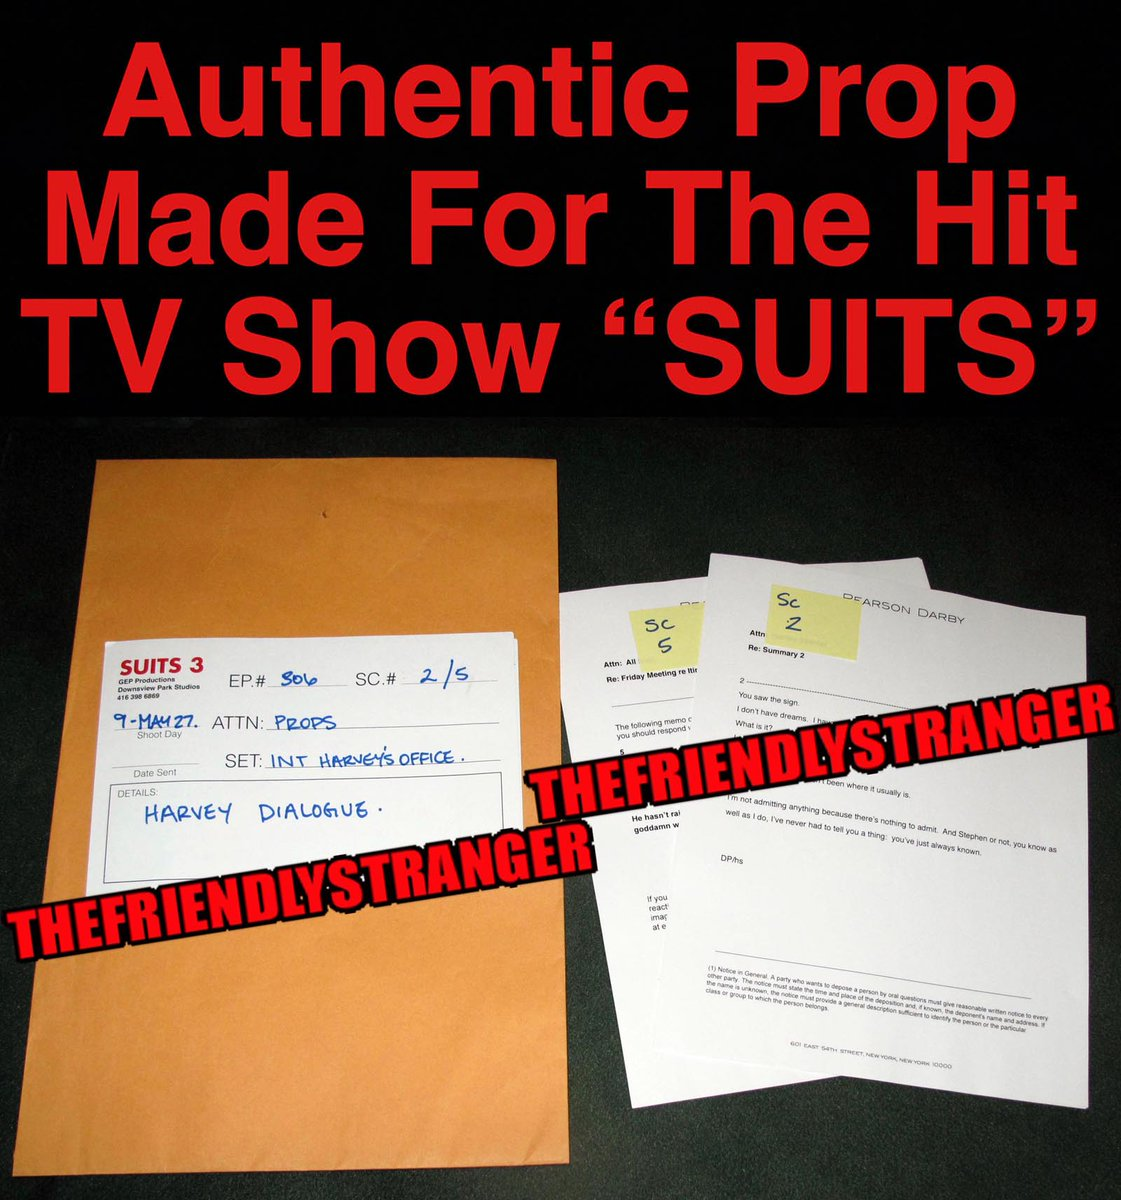 """We've Added Some RARE - HARVEY SPECTER Dialogue """"SUITS"""" PROPS, that are Now Available. Buy Them Here: https://ebay.to/31jbYKG ... #suits #suitsusa #suitors #gabrielmacht #harveyspecter #props https://www.instagram.com/p/CDb0x6iHSrh/pic.twitter.com/L5N0x7ozLI"""